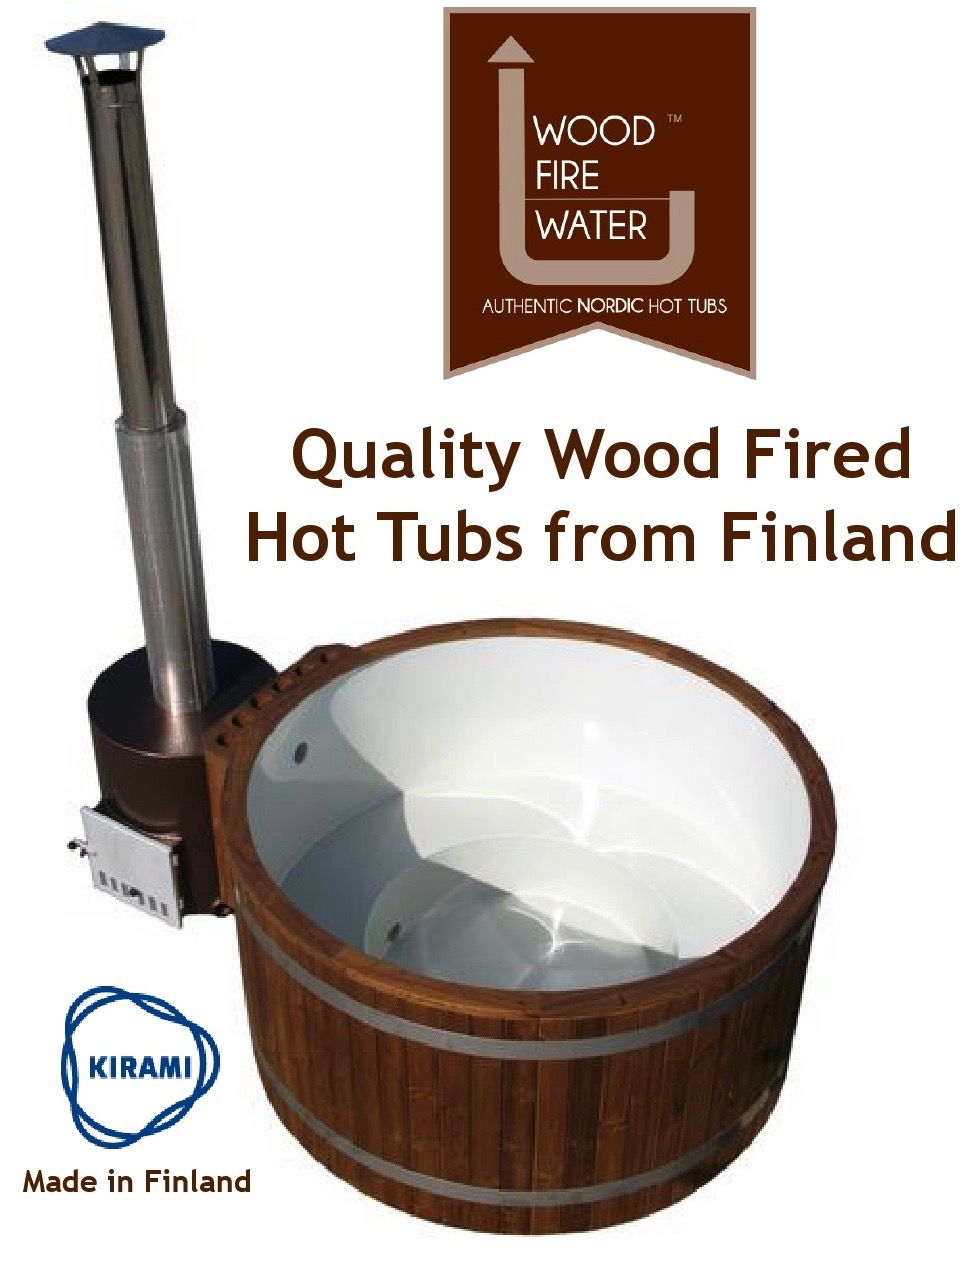 Wood Fire Water Nordic Hot Tubs Stirling